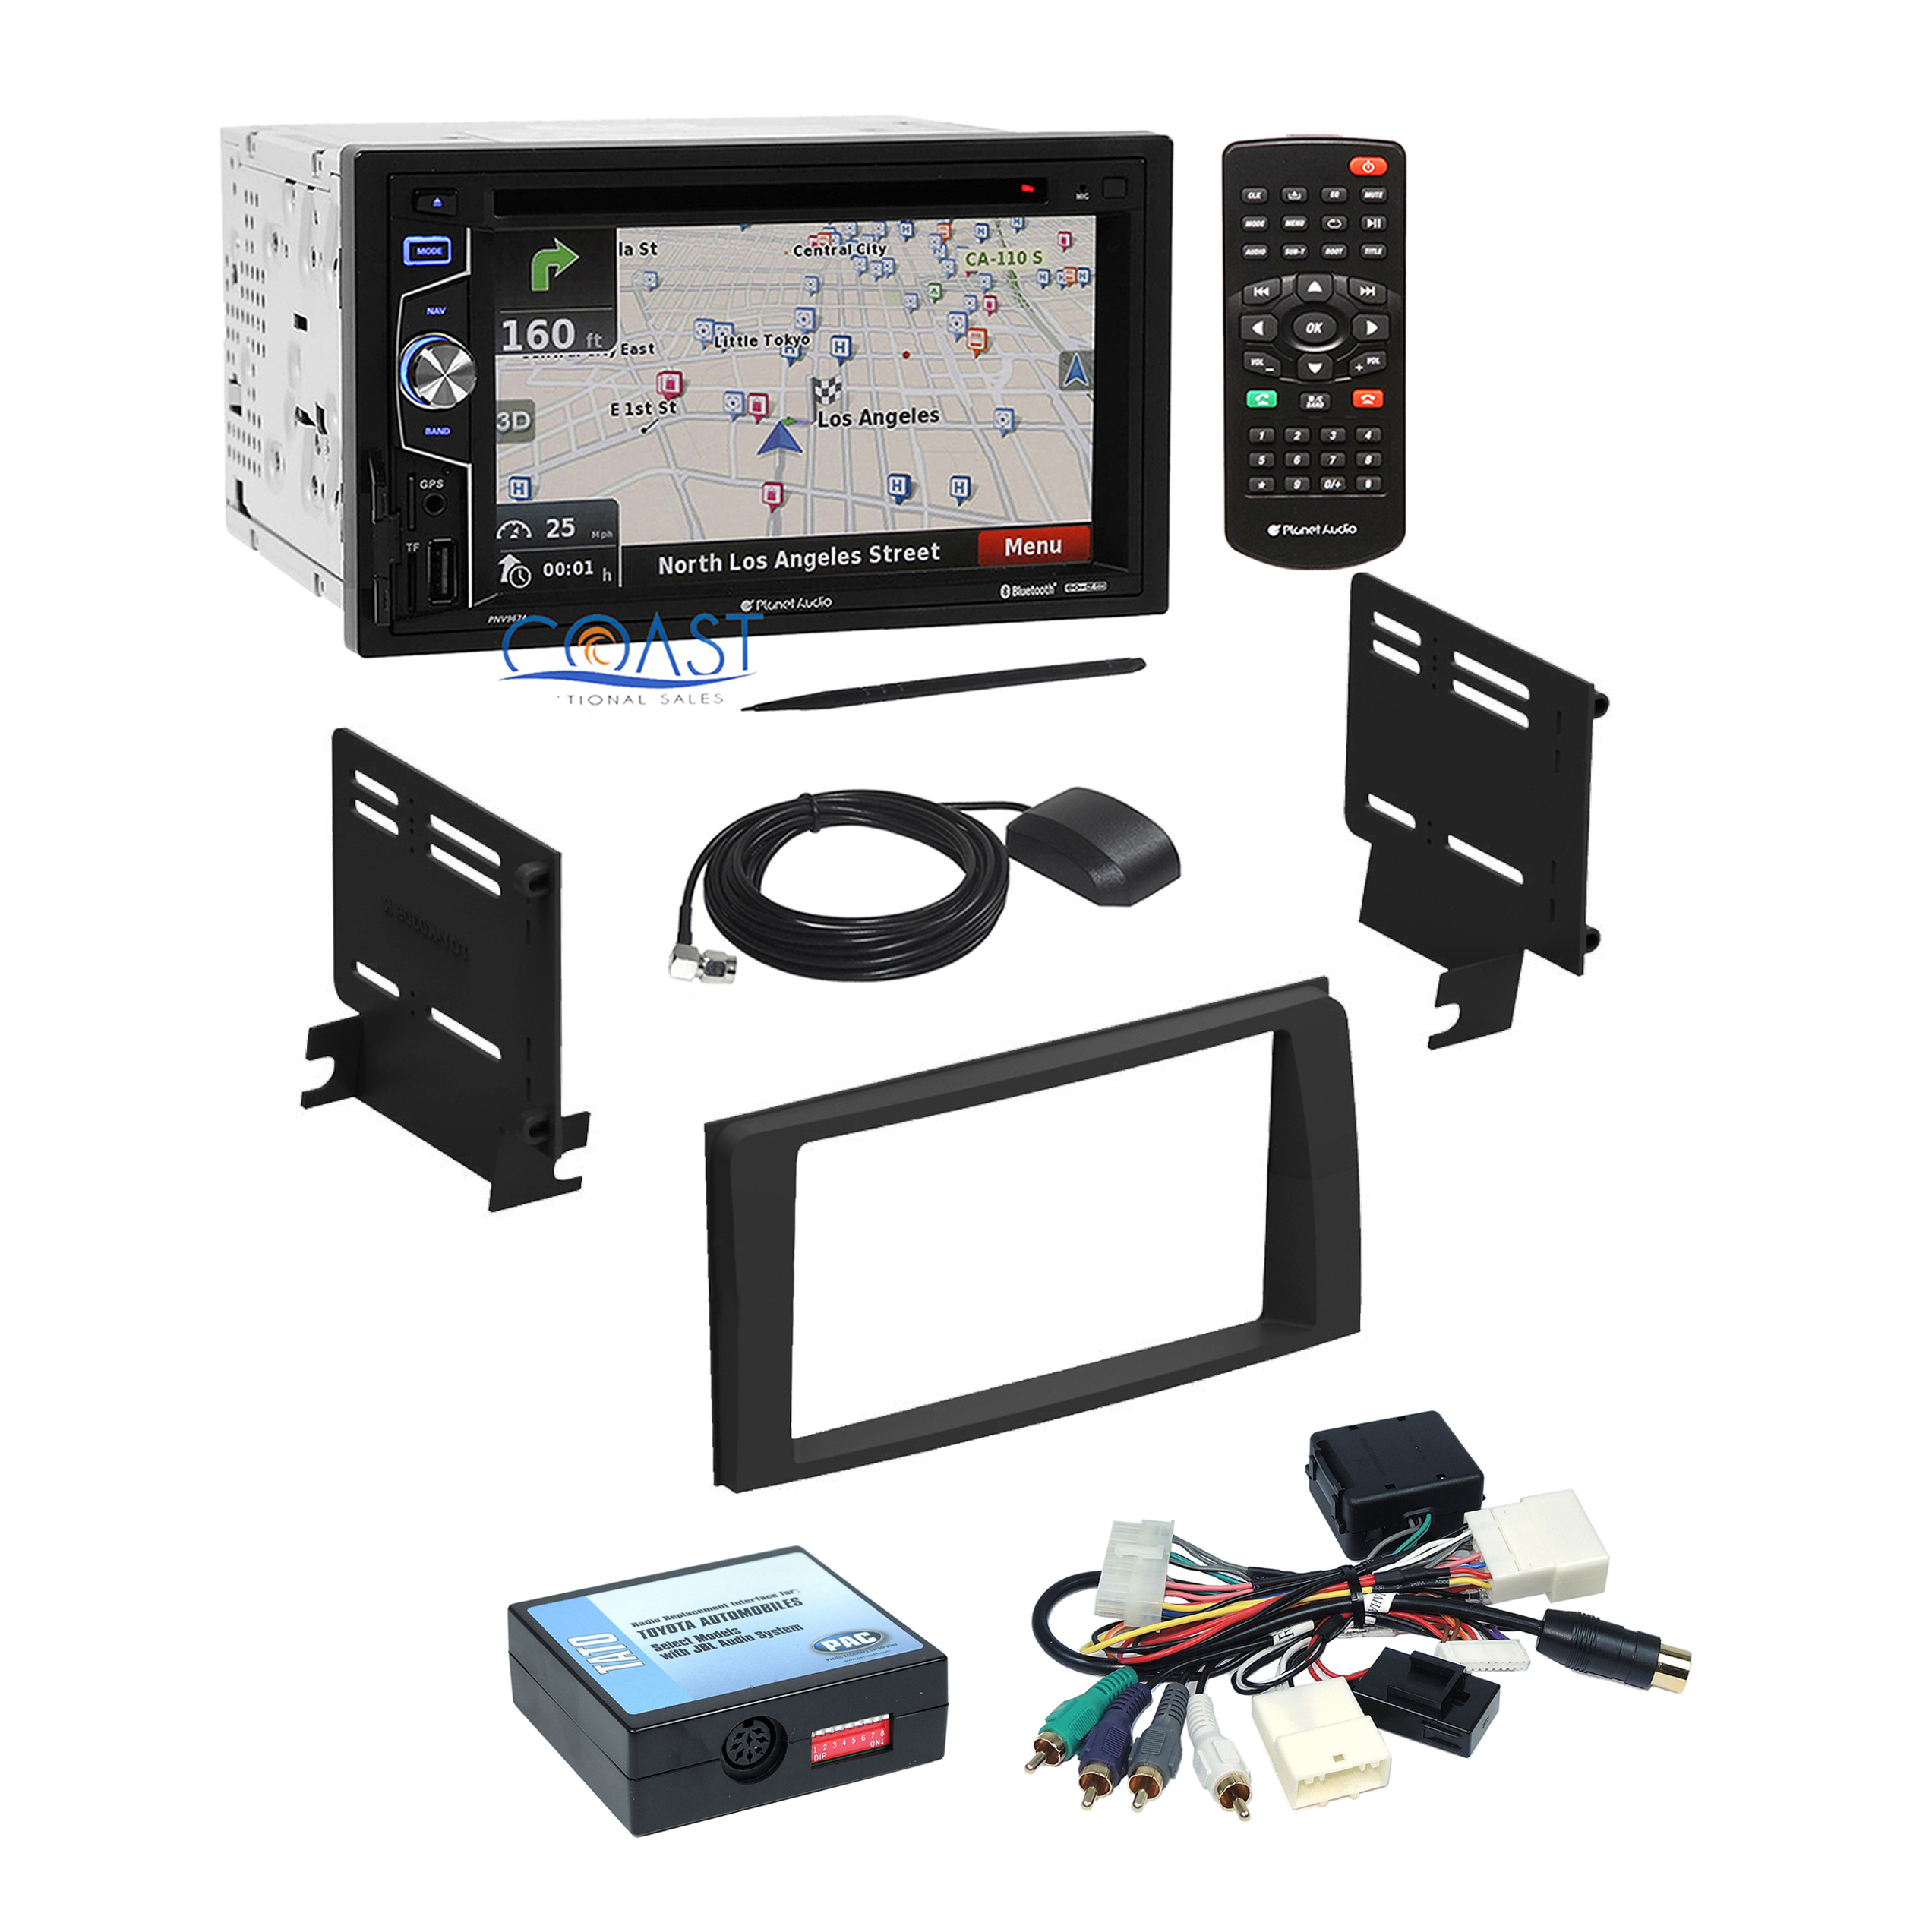 planet audio radio stereo dash kit jbl wire interface for 03 09 toyota 4 runner ebay